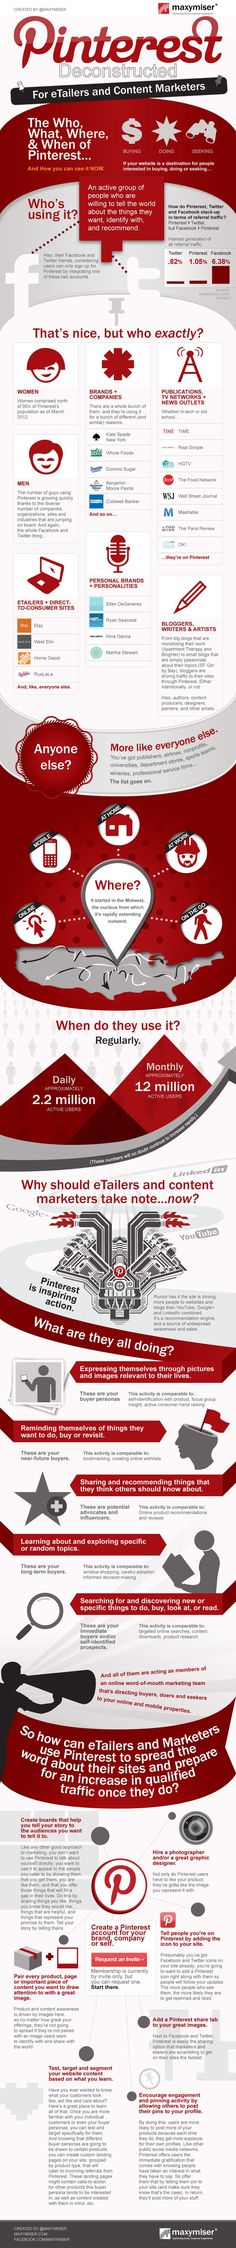 The Who, What, Where & When of Pinterest [infographic]